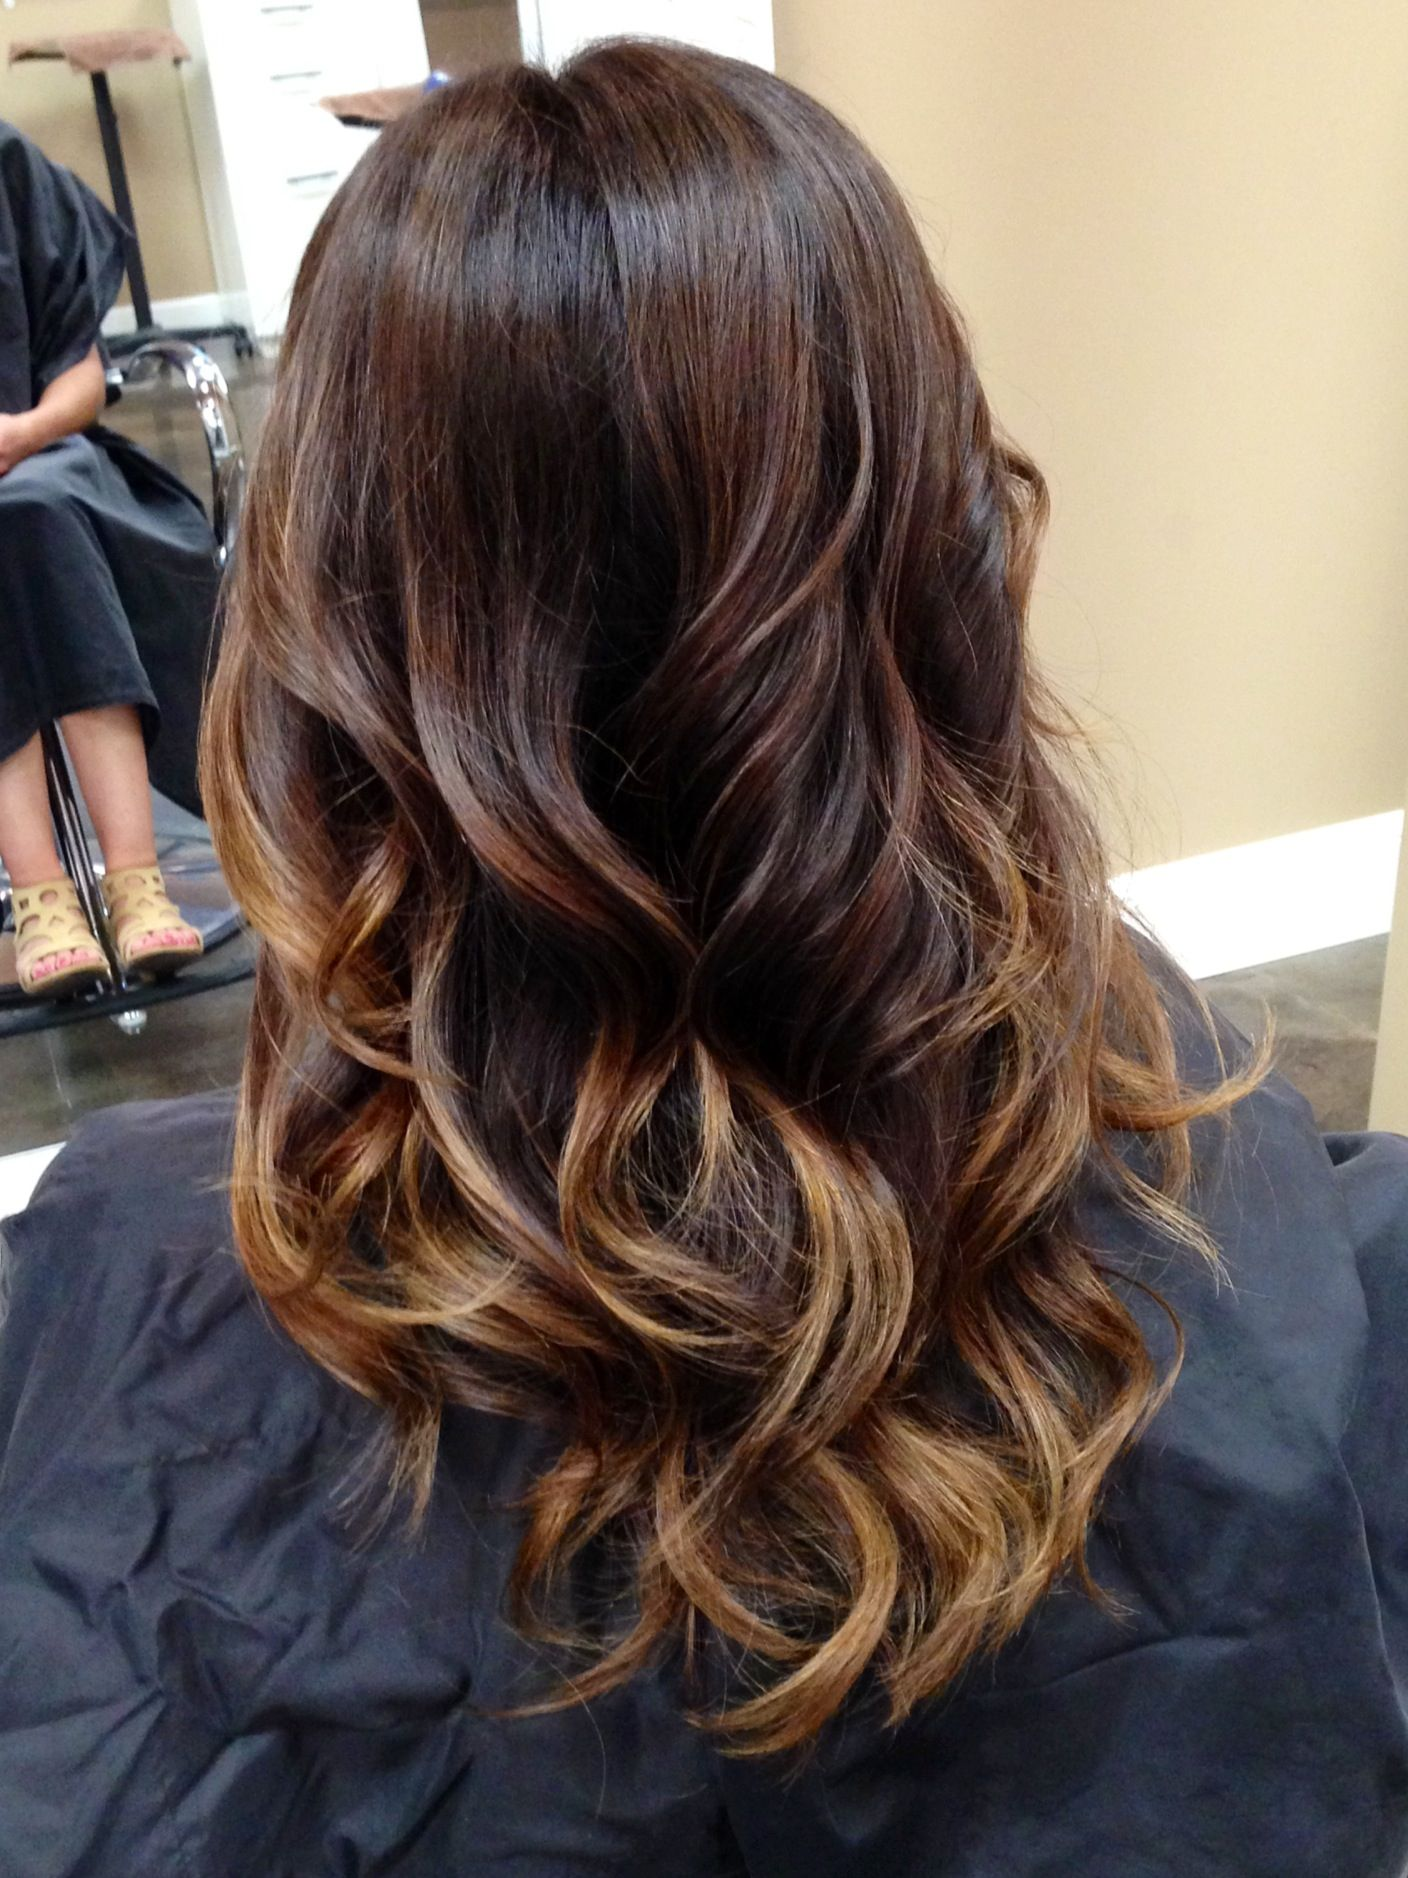 Smokey blonde balayage | All things HAIR | Pinterest